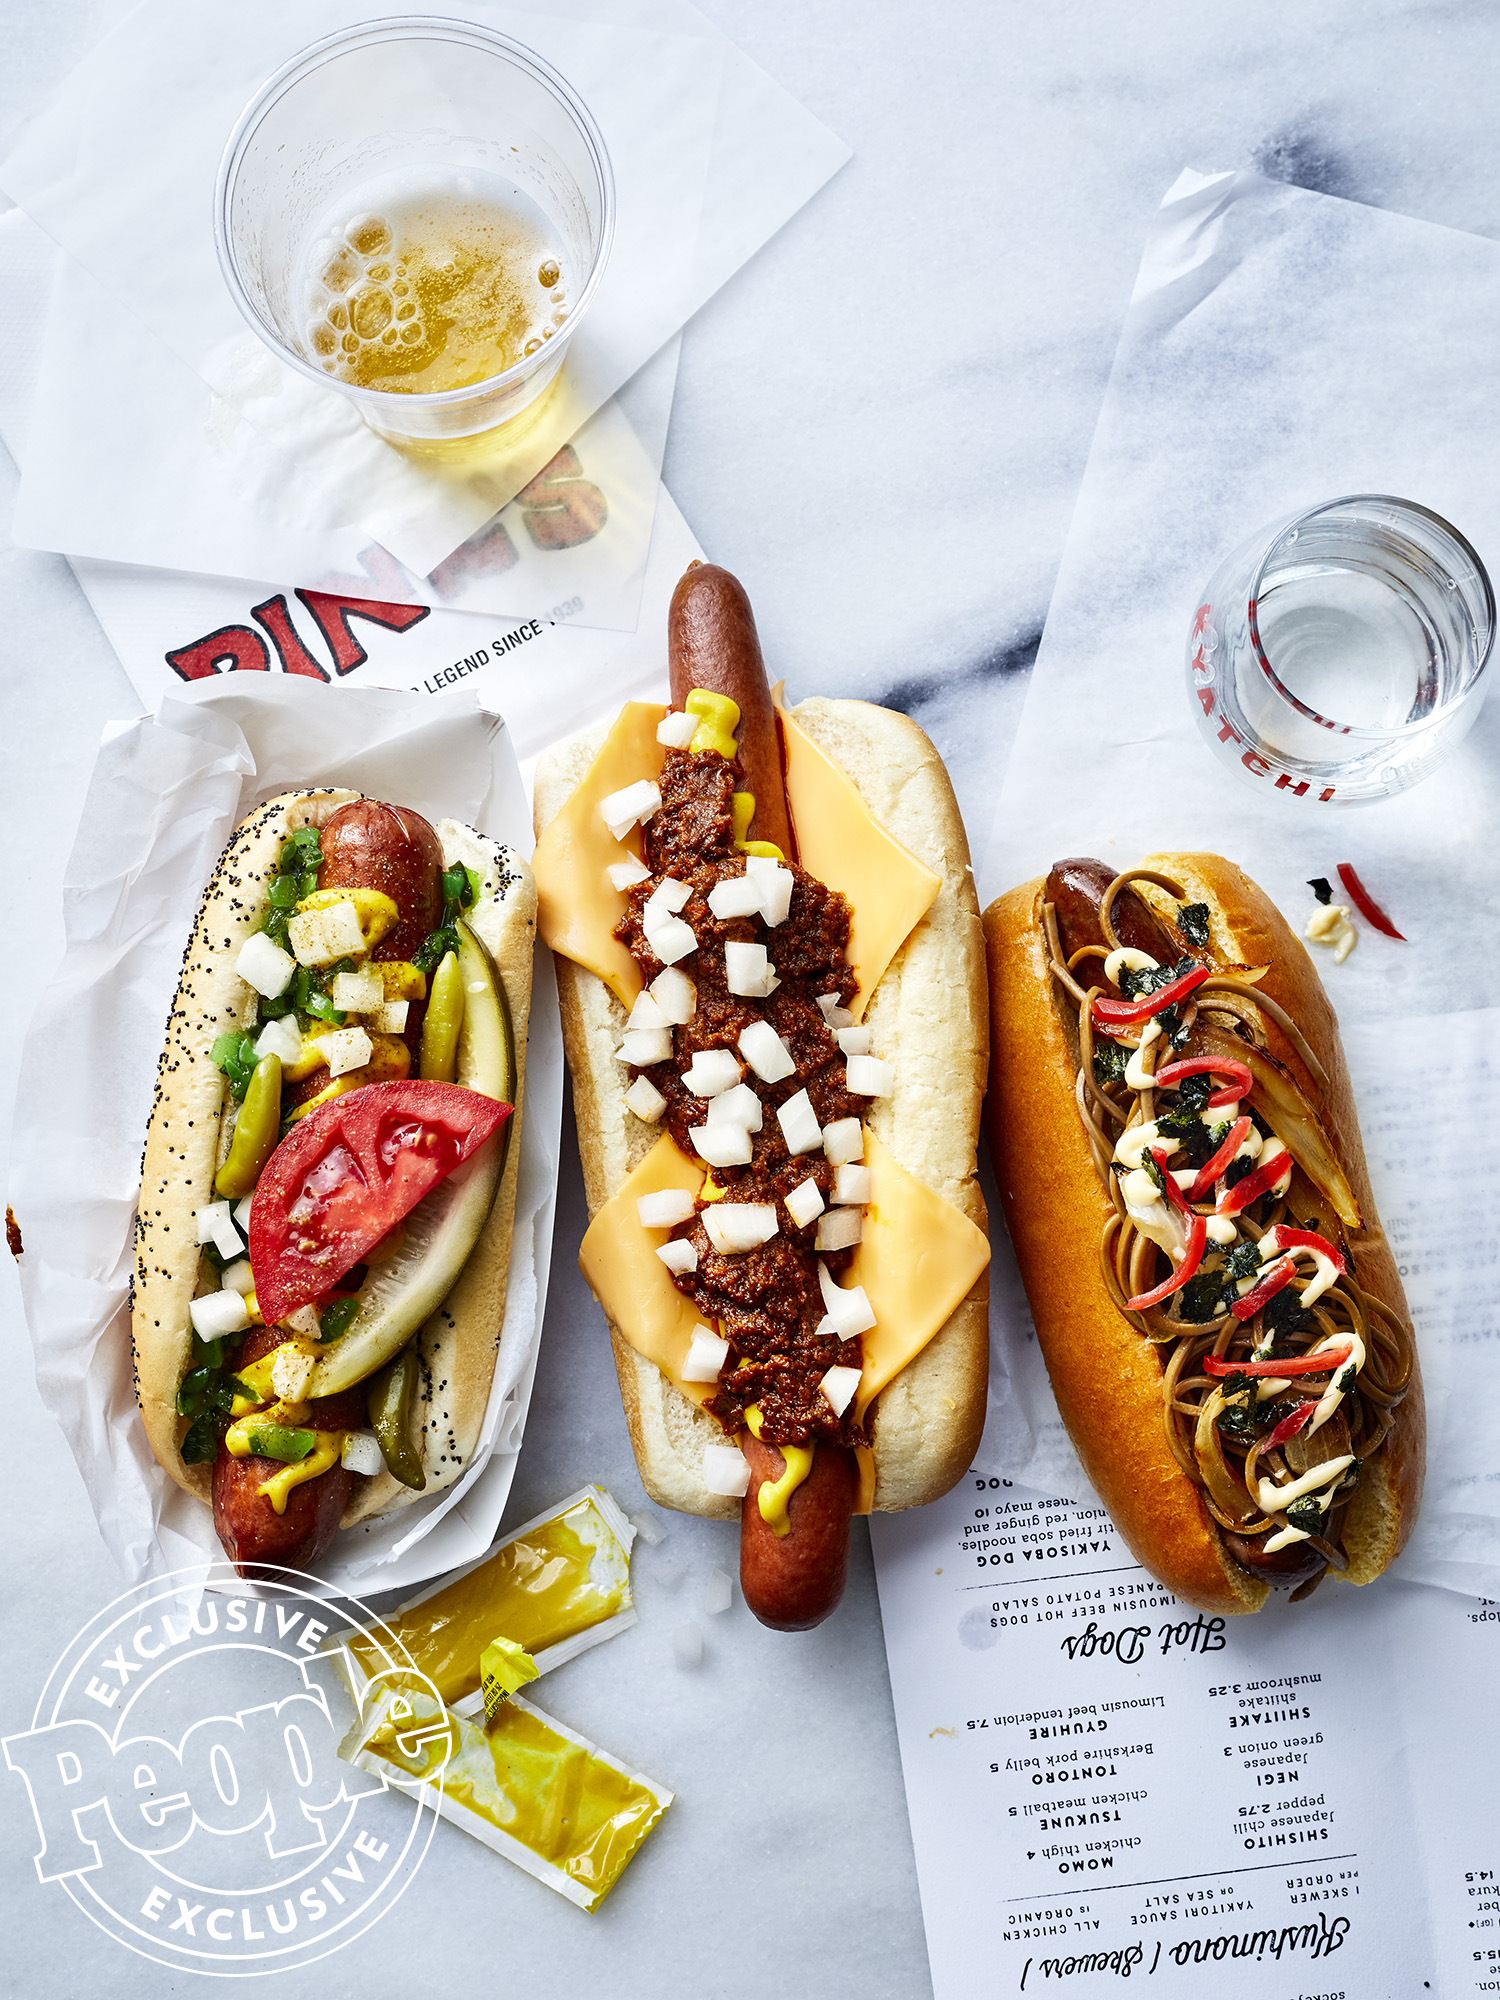 Food Travel - People Food - PInk's -Chili Cheese DogKyatchi's Yakosoba Dog topped with stir fried soba noodles and Japanese mayoMike's Hot DogsChicago-style dog with as pickle spear